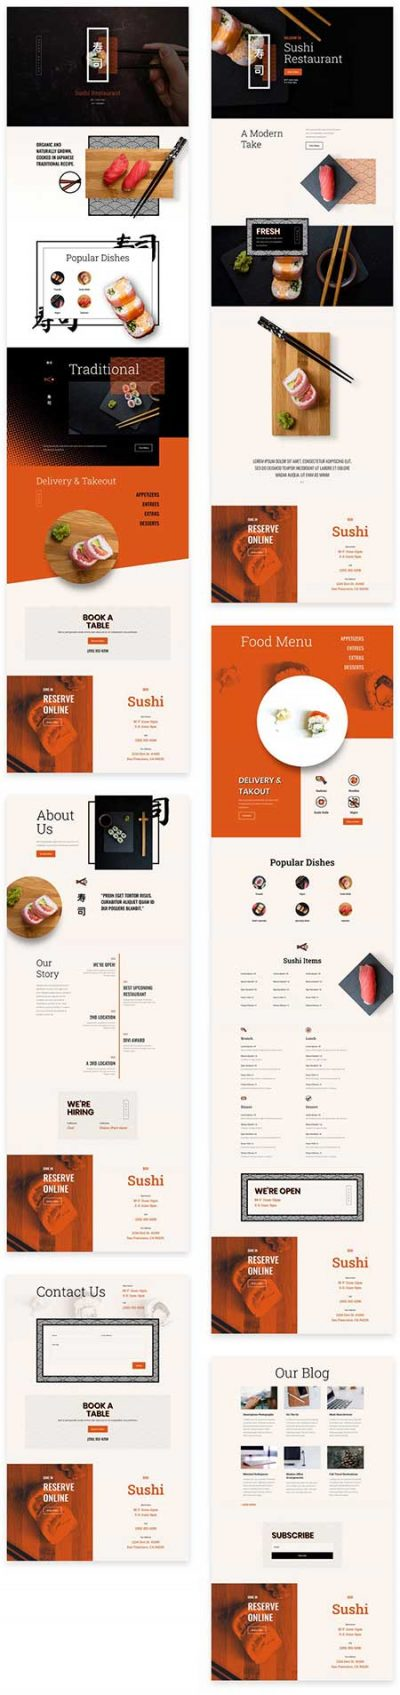 Sushi website layouts